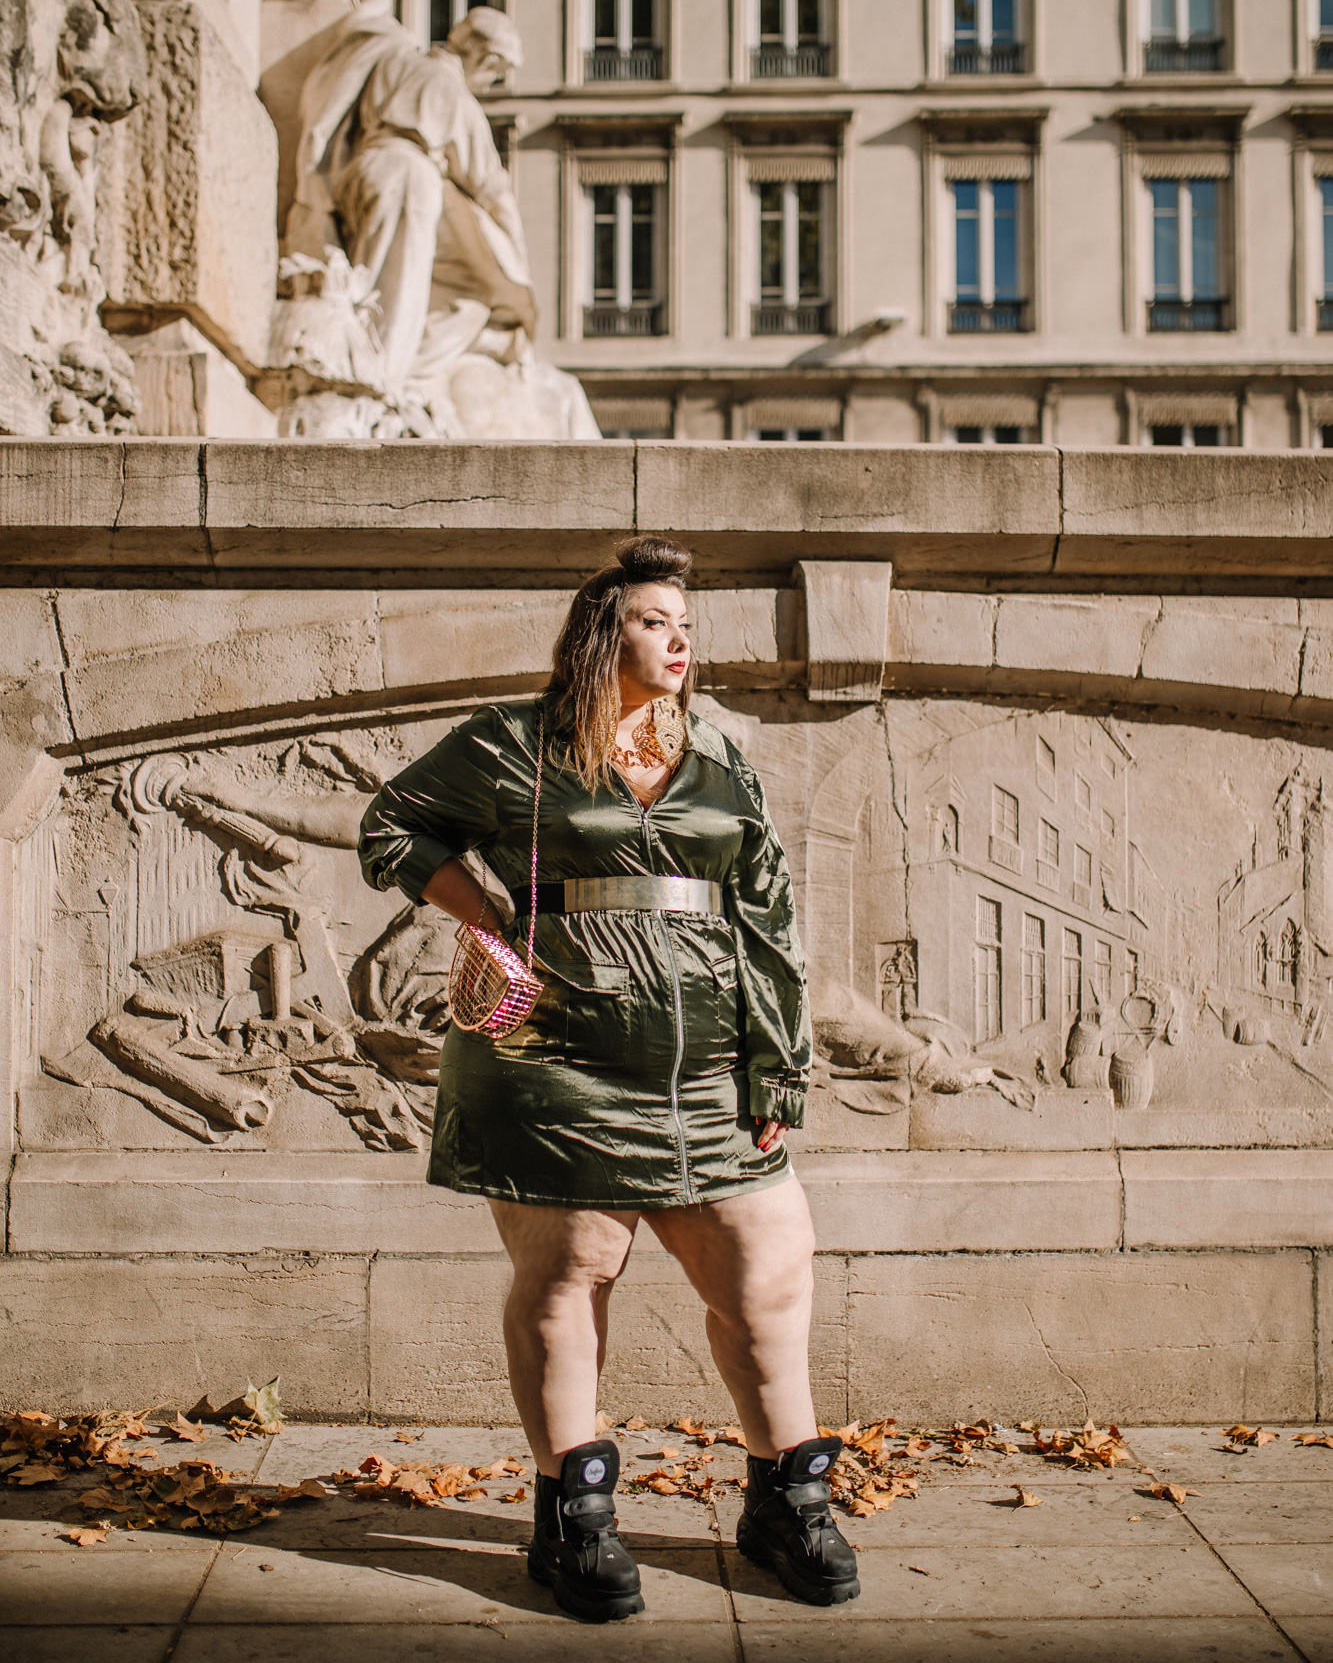 every body in plt ashley graham pretty little thing plus size grande taille curvy girl ronde grosse fat bodypositive